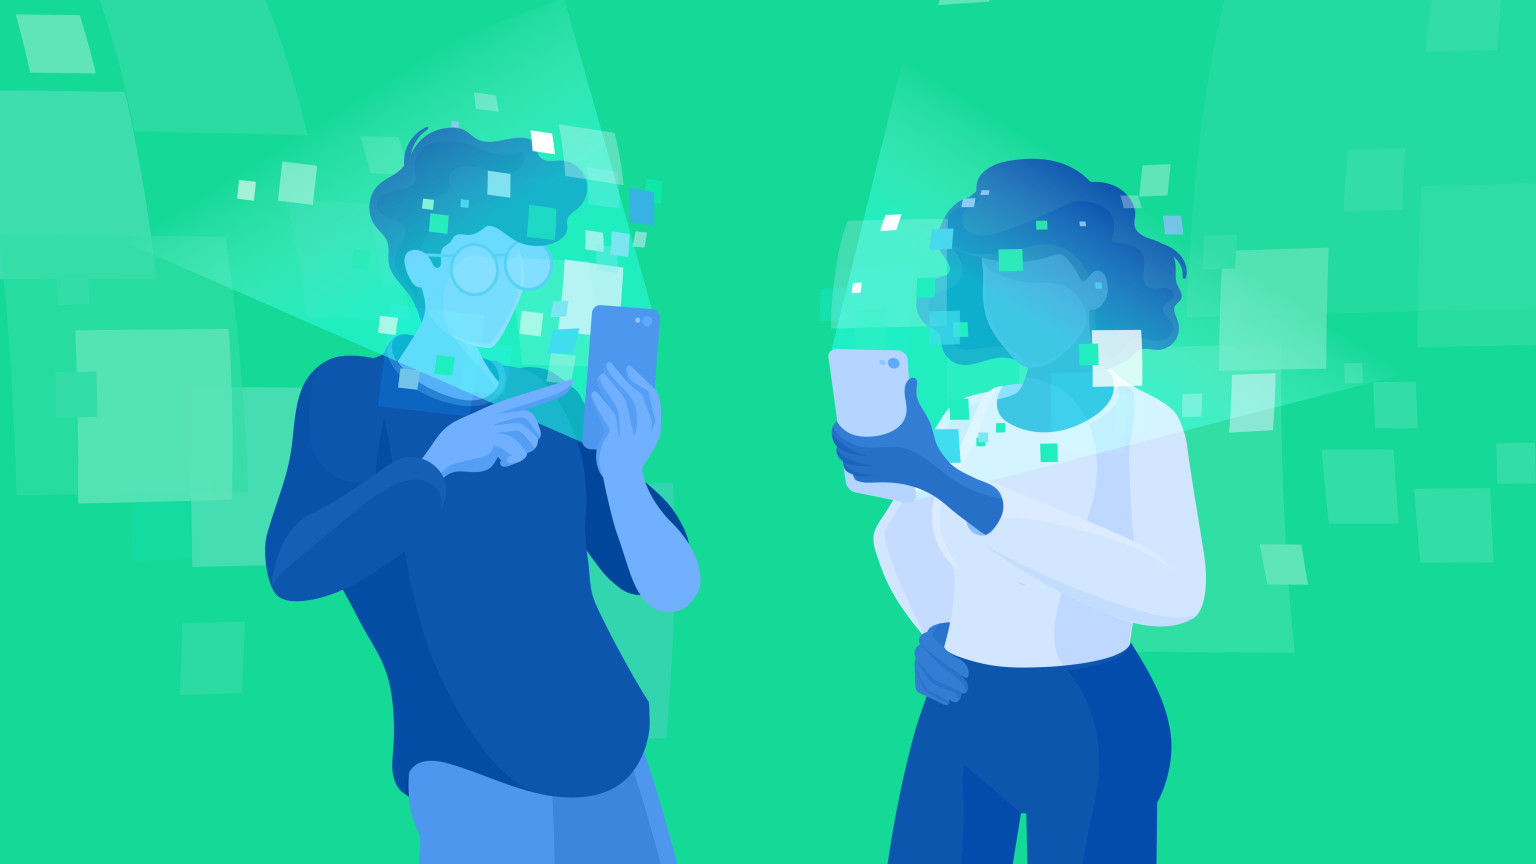 Illustration to two indviduals looking at very bright phone screens